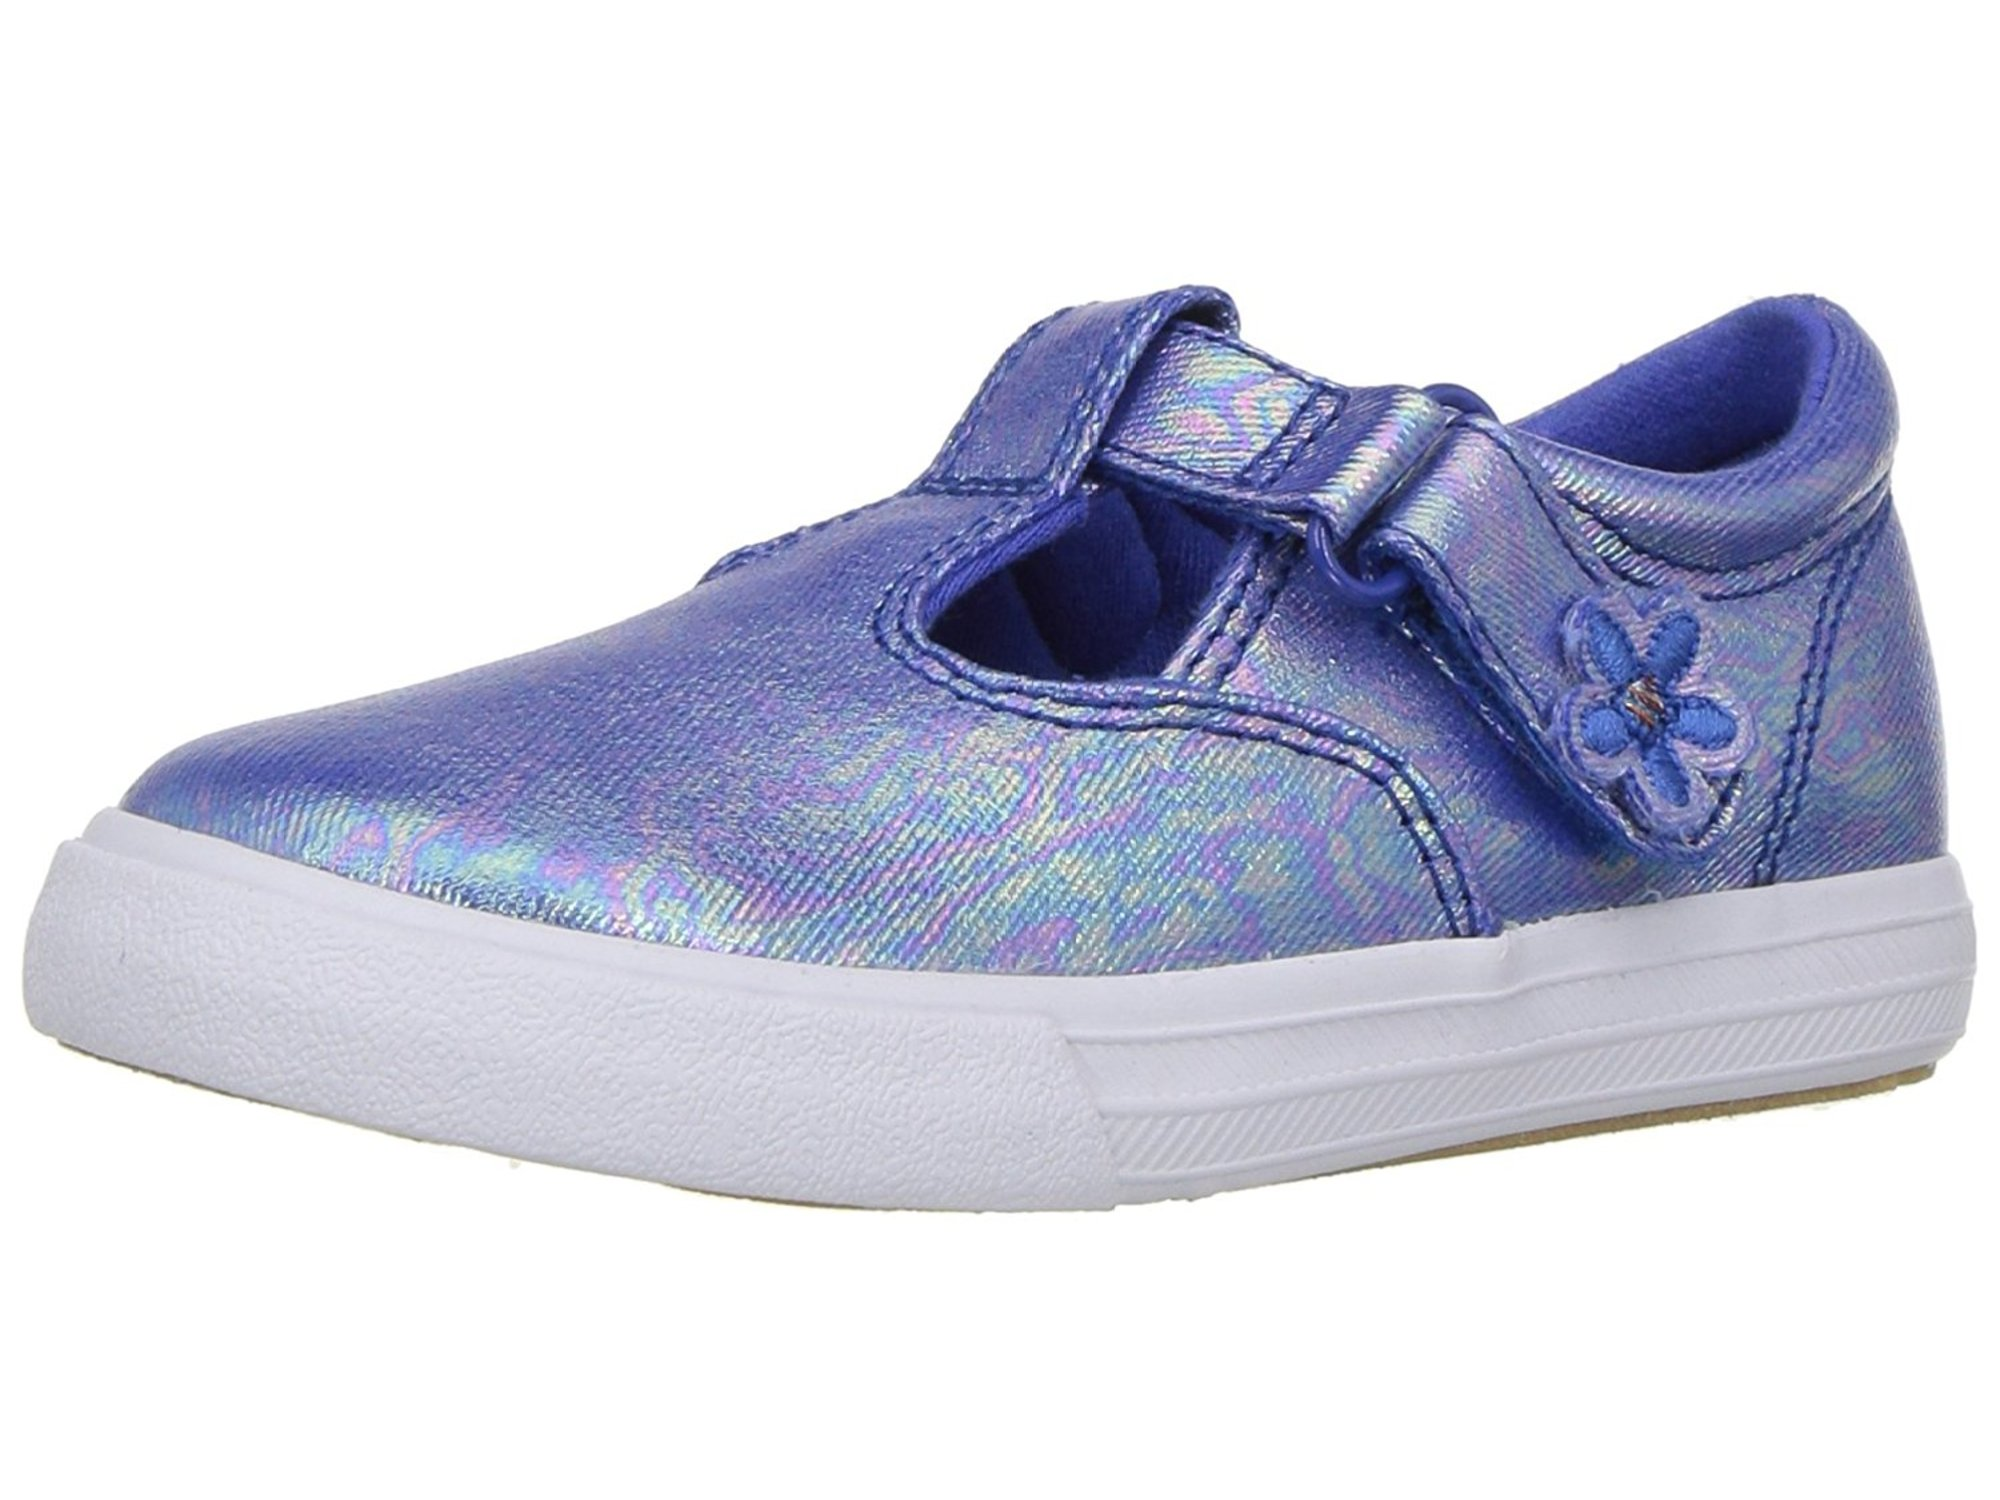 Keds Girls Daphne Leather Low Top Fashion Sneaker by Keds